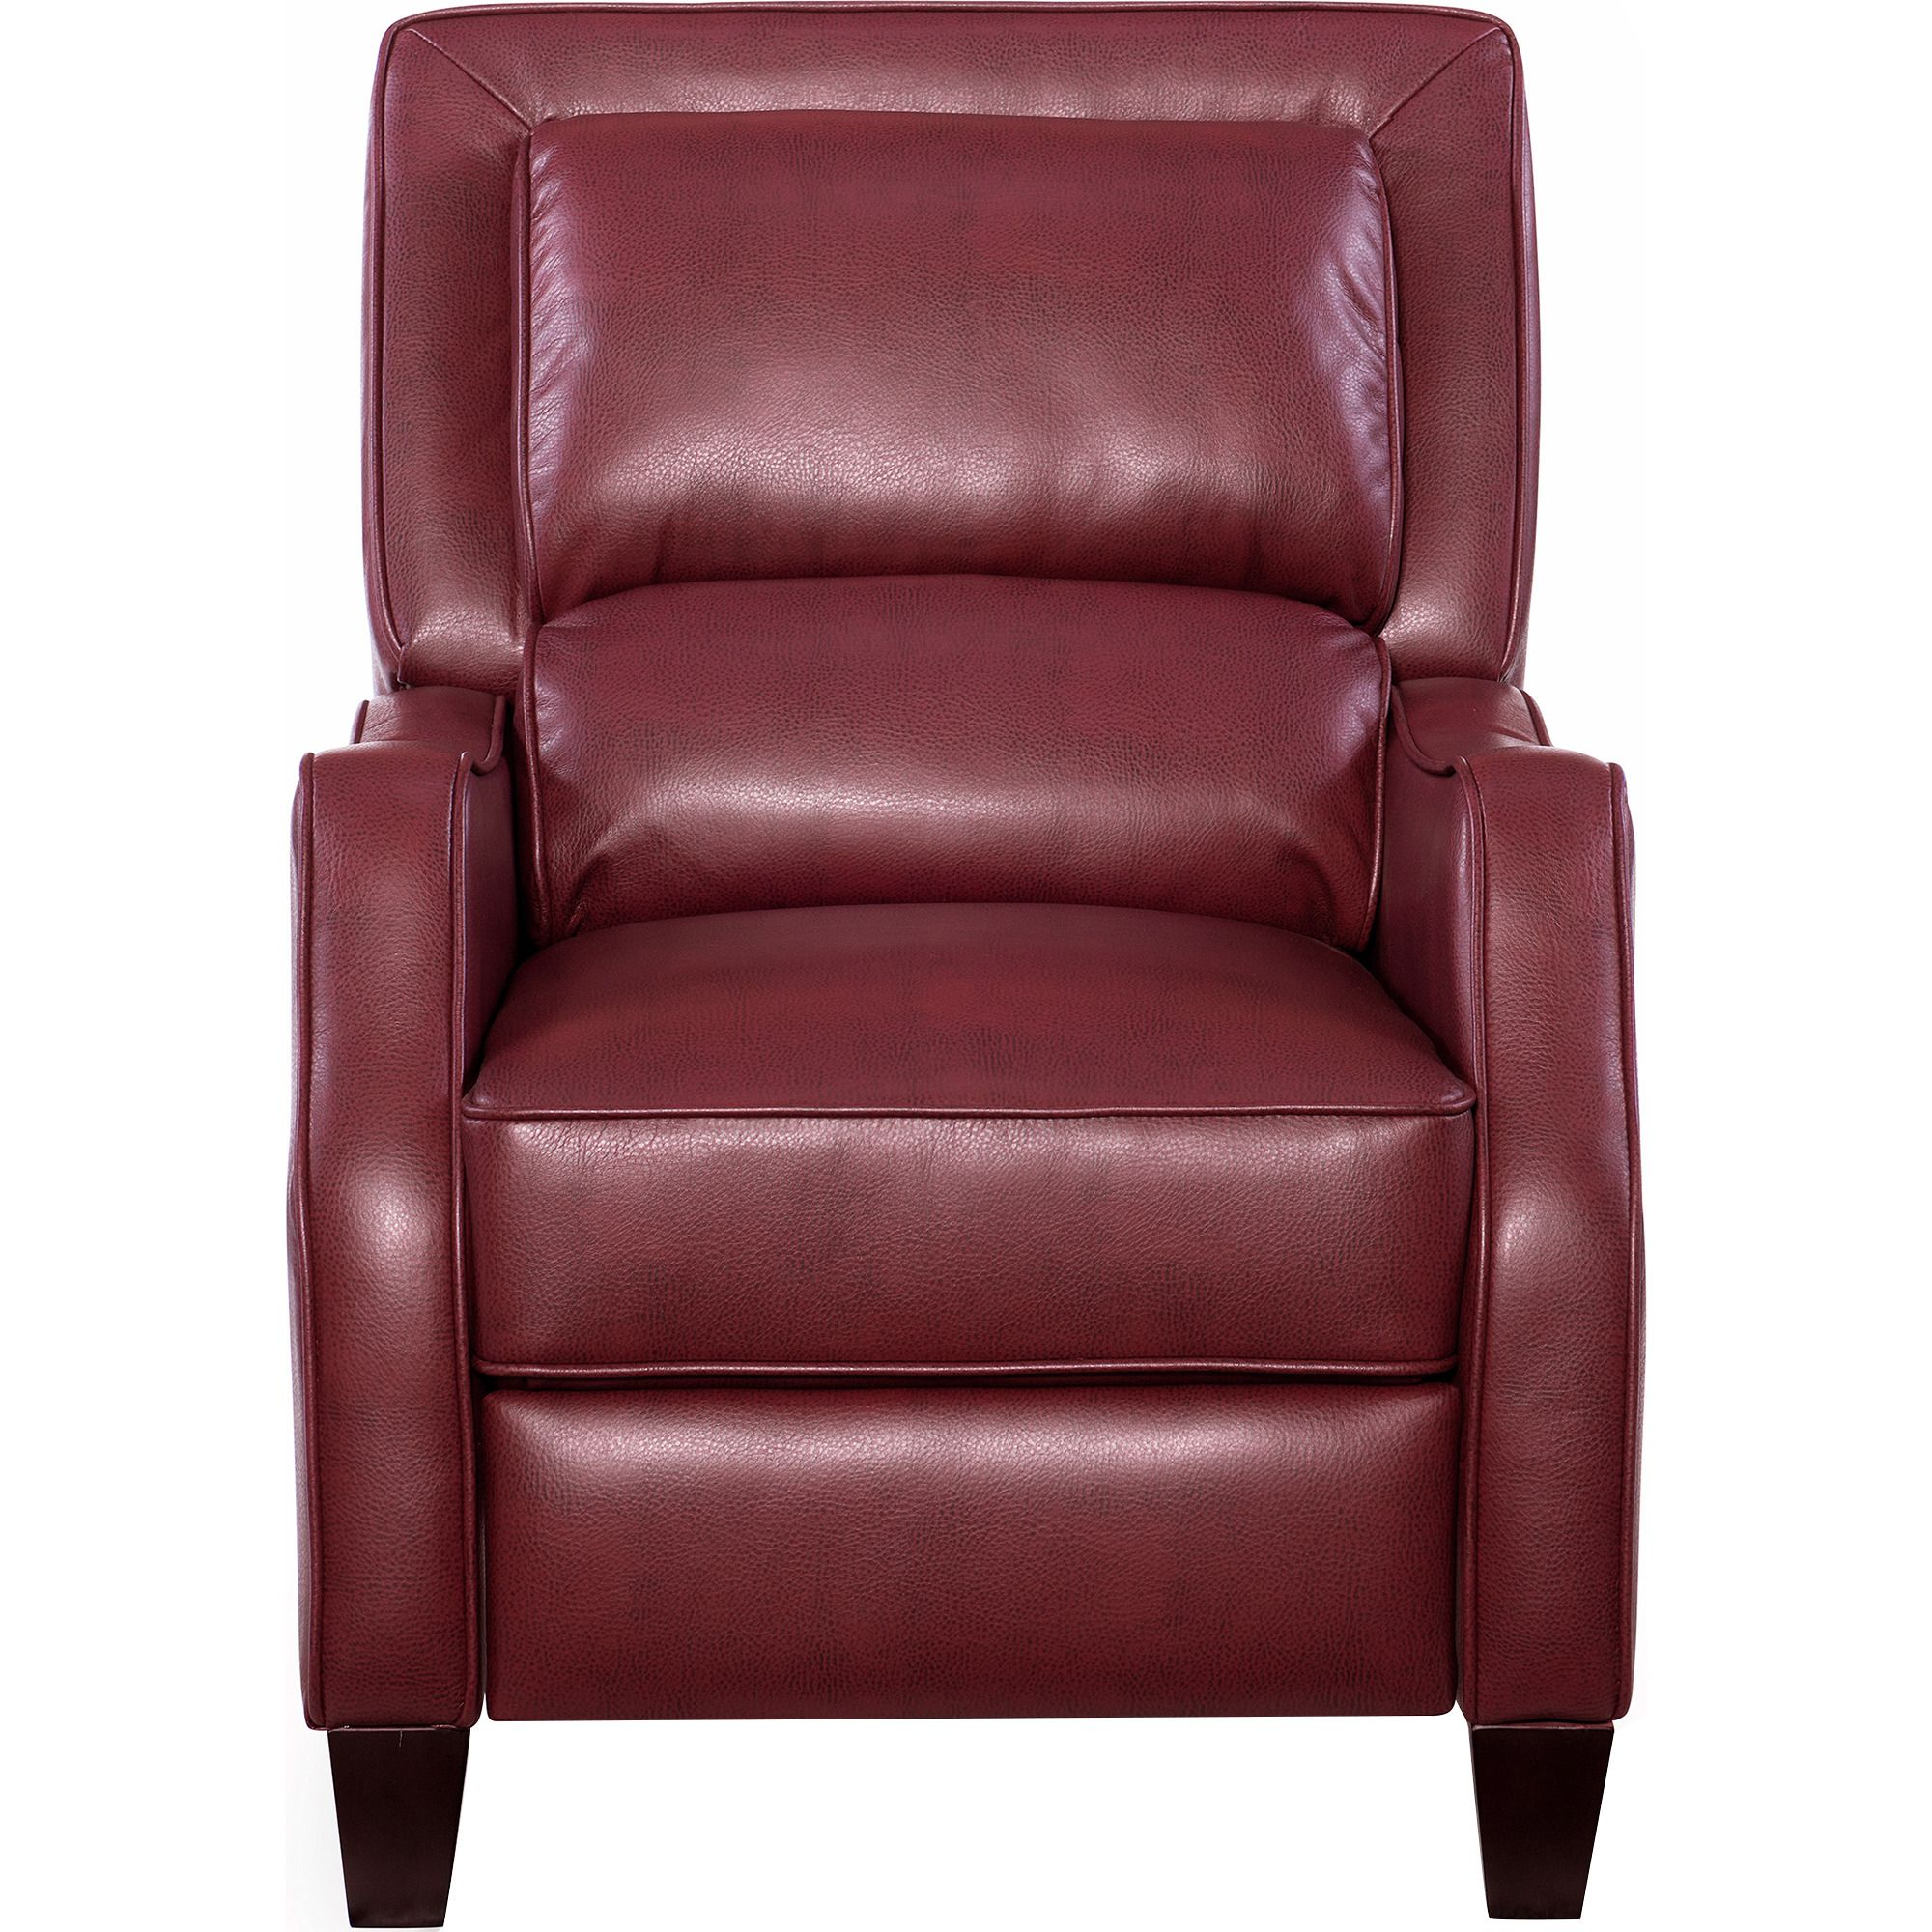 Duncan Recliner in Red   Opulence Home Furniture   Home Gallery Stores